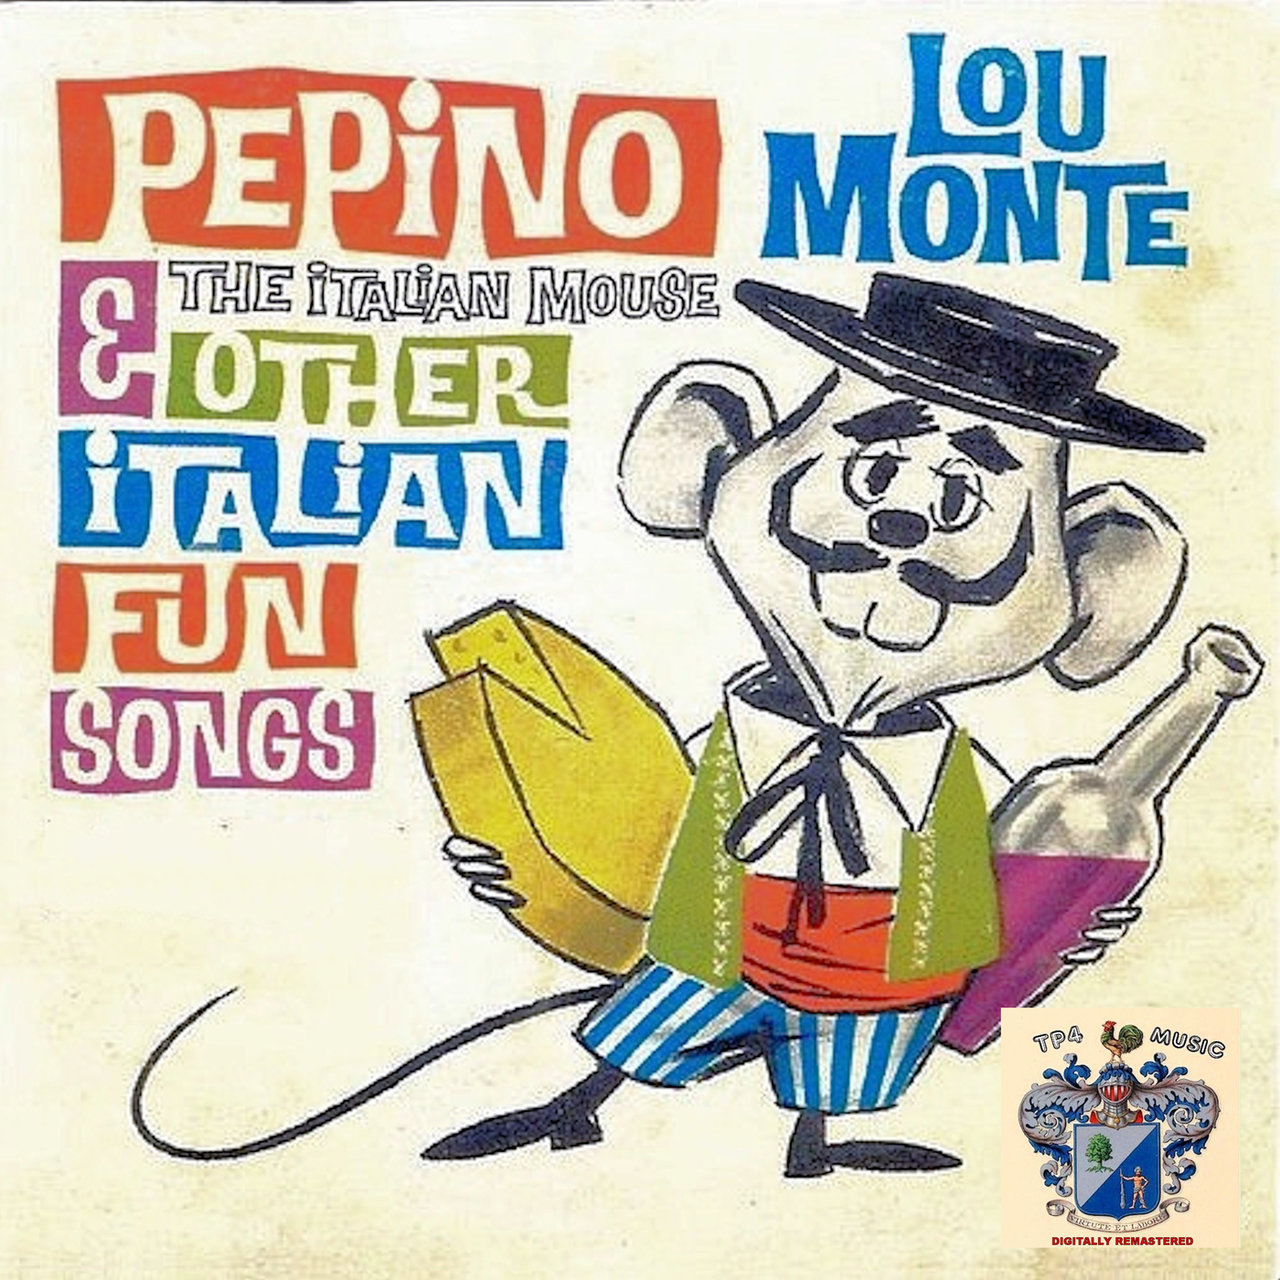 pepino the italian mouse - Dominick The Italian Christmas Donkey Song